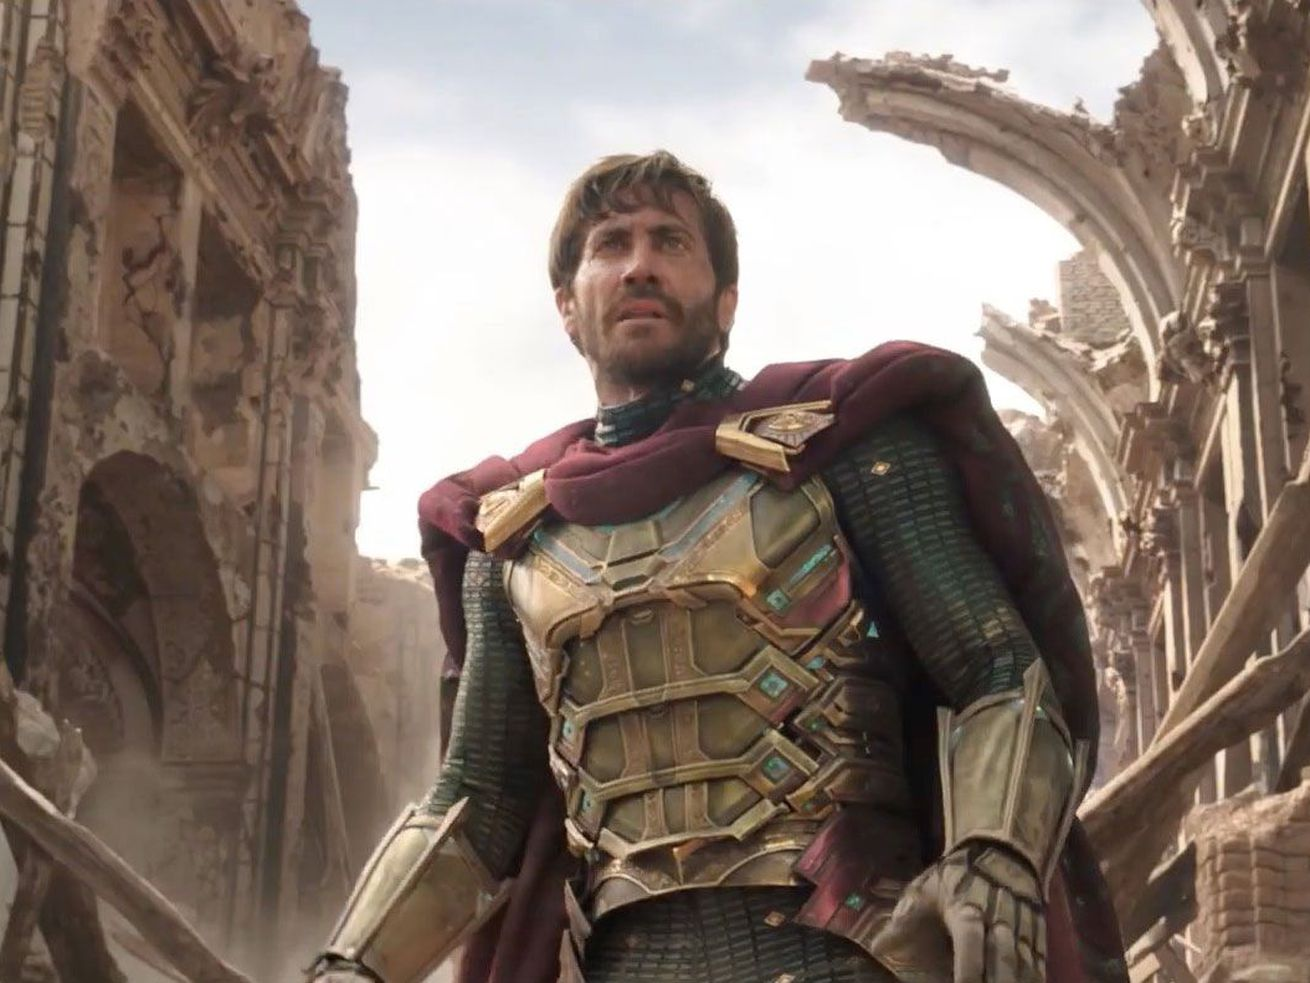 What happened with Spider-Man: Far From Home's multiverse tease? - The Reports